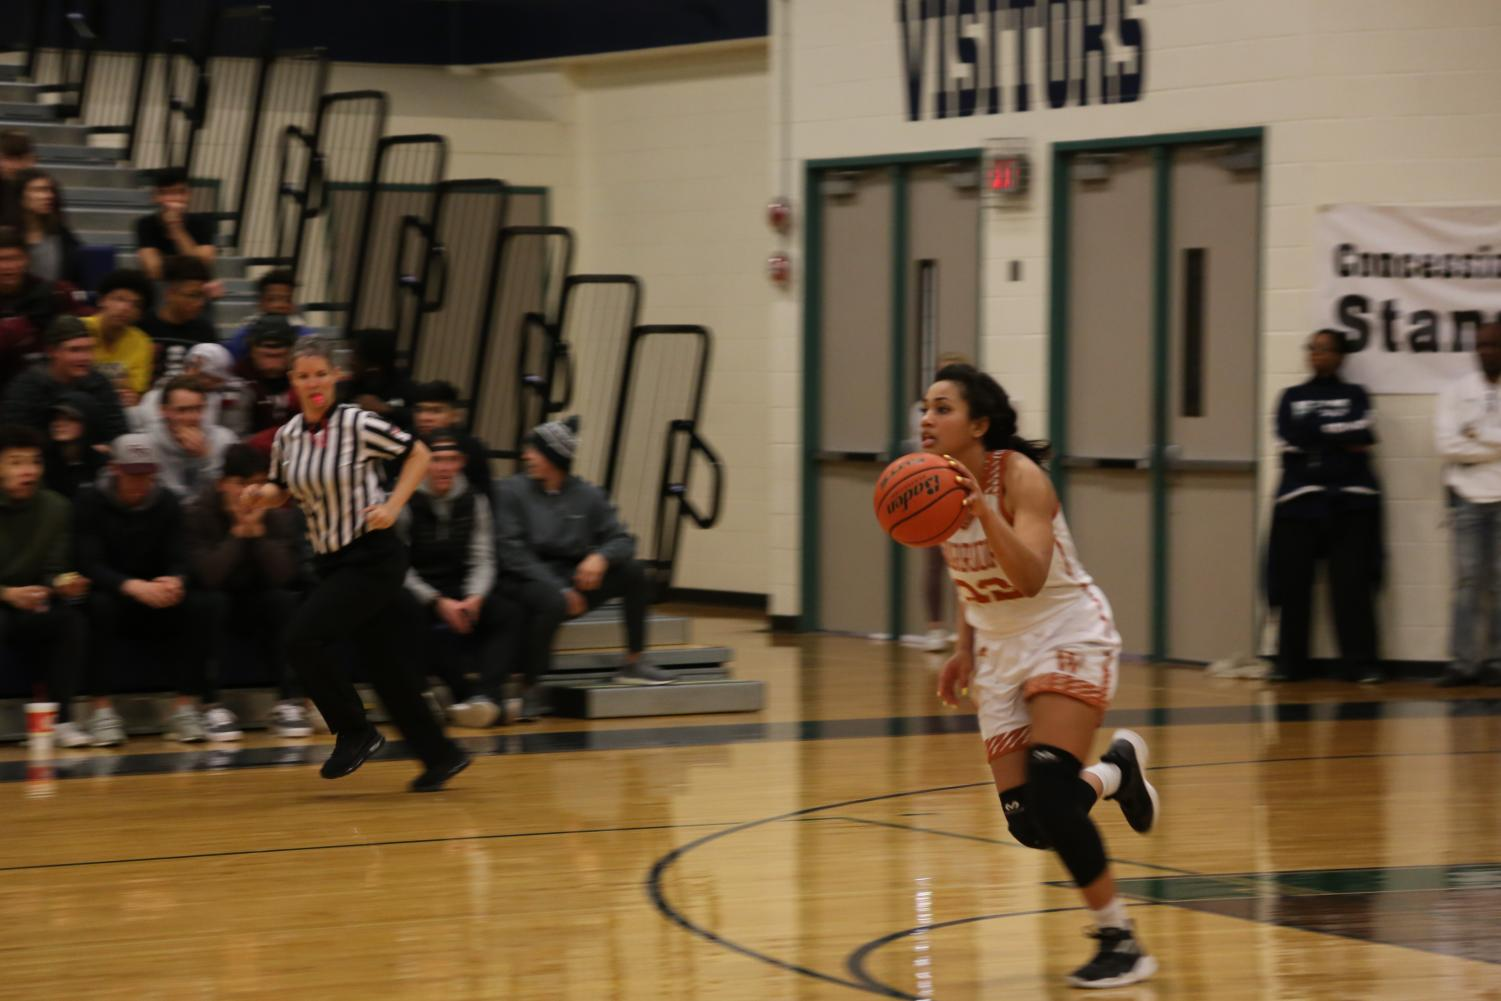 Makayla+Coy+%2719+recovers+a+rebound+and+rushes+to+the+other+side+of+the+court.